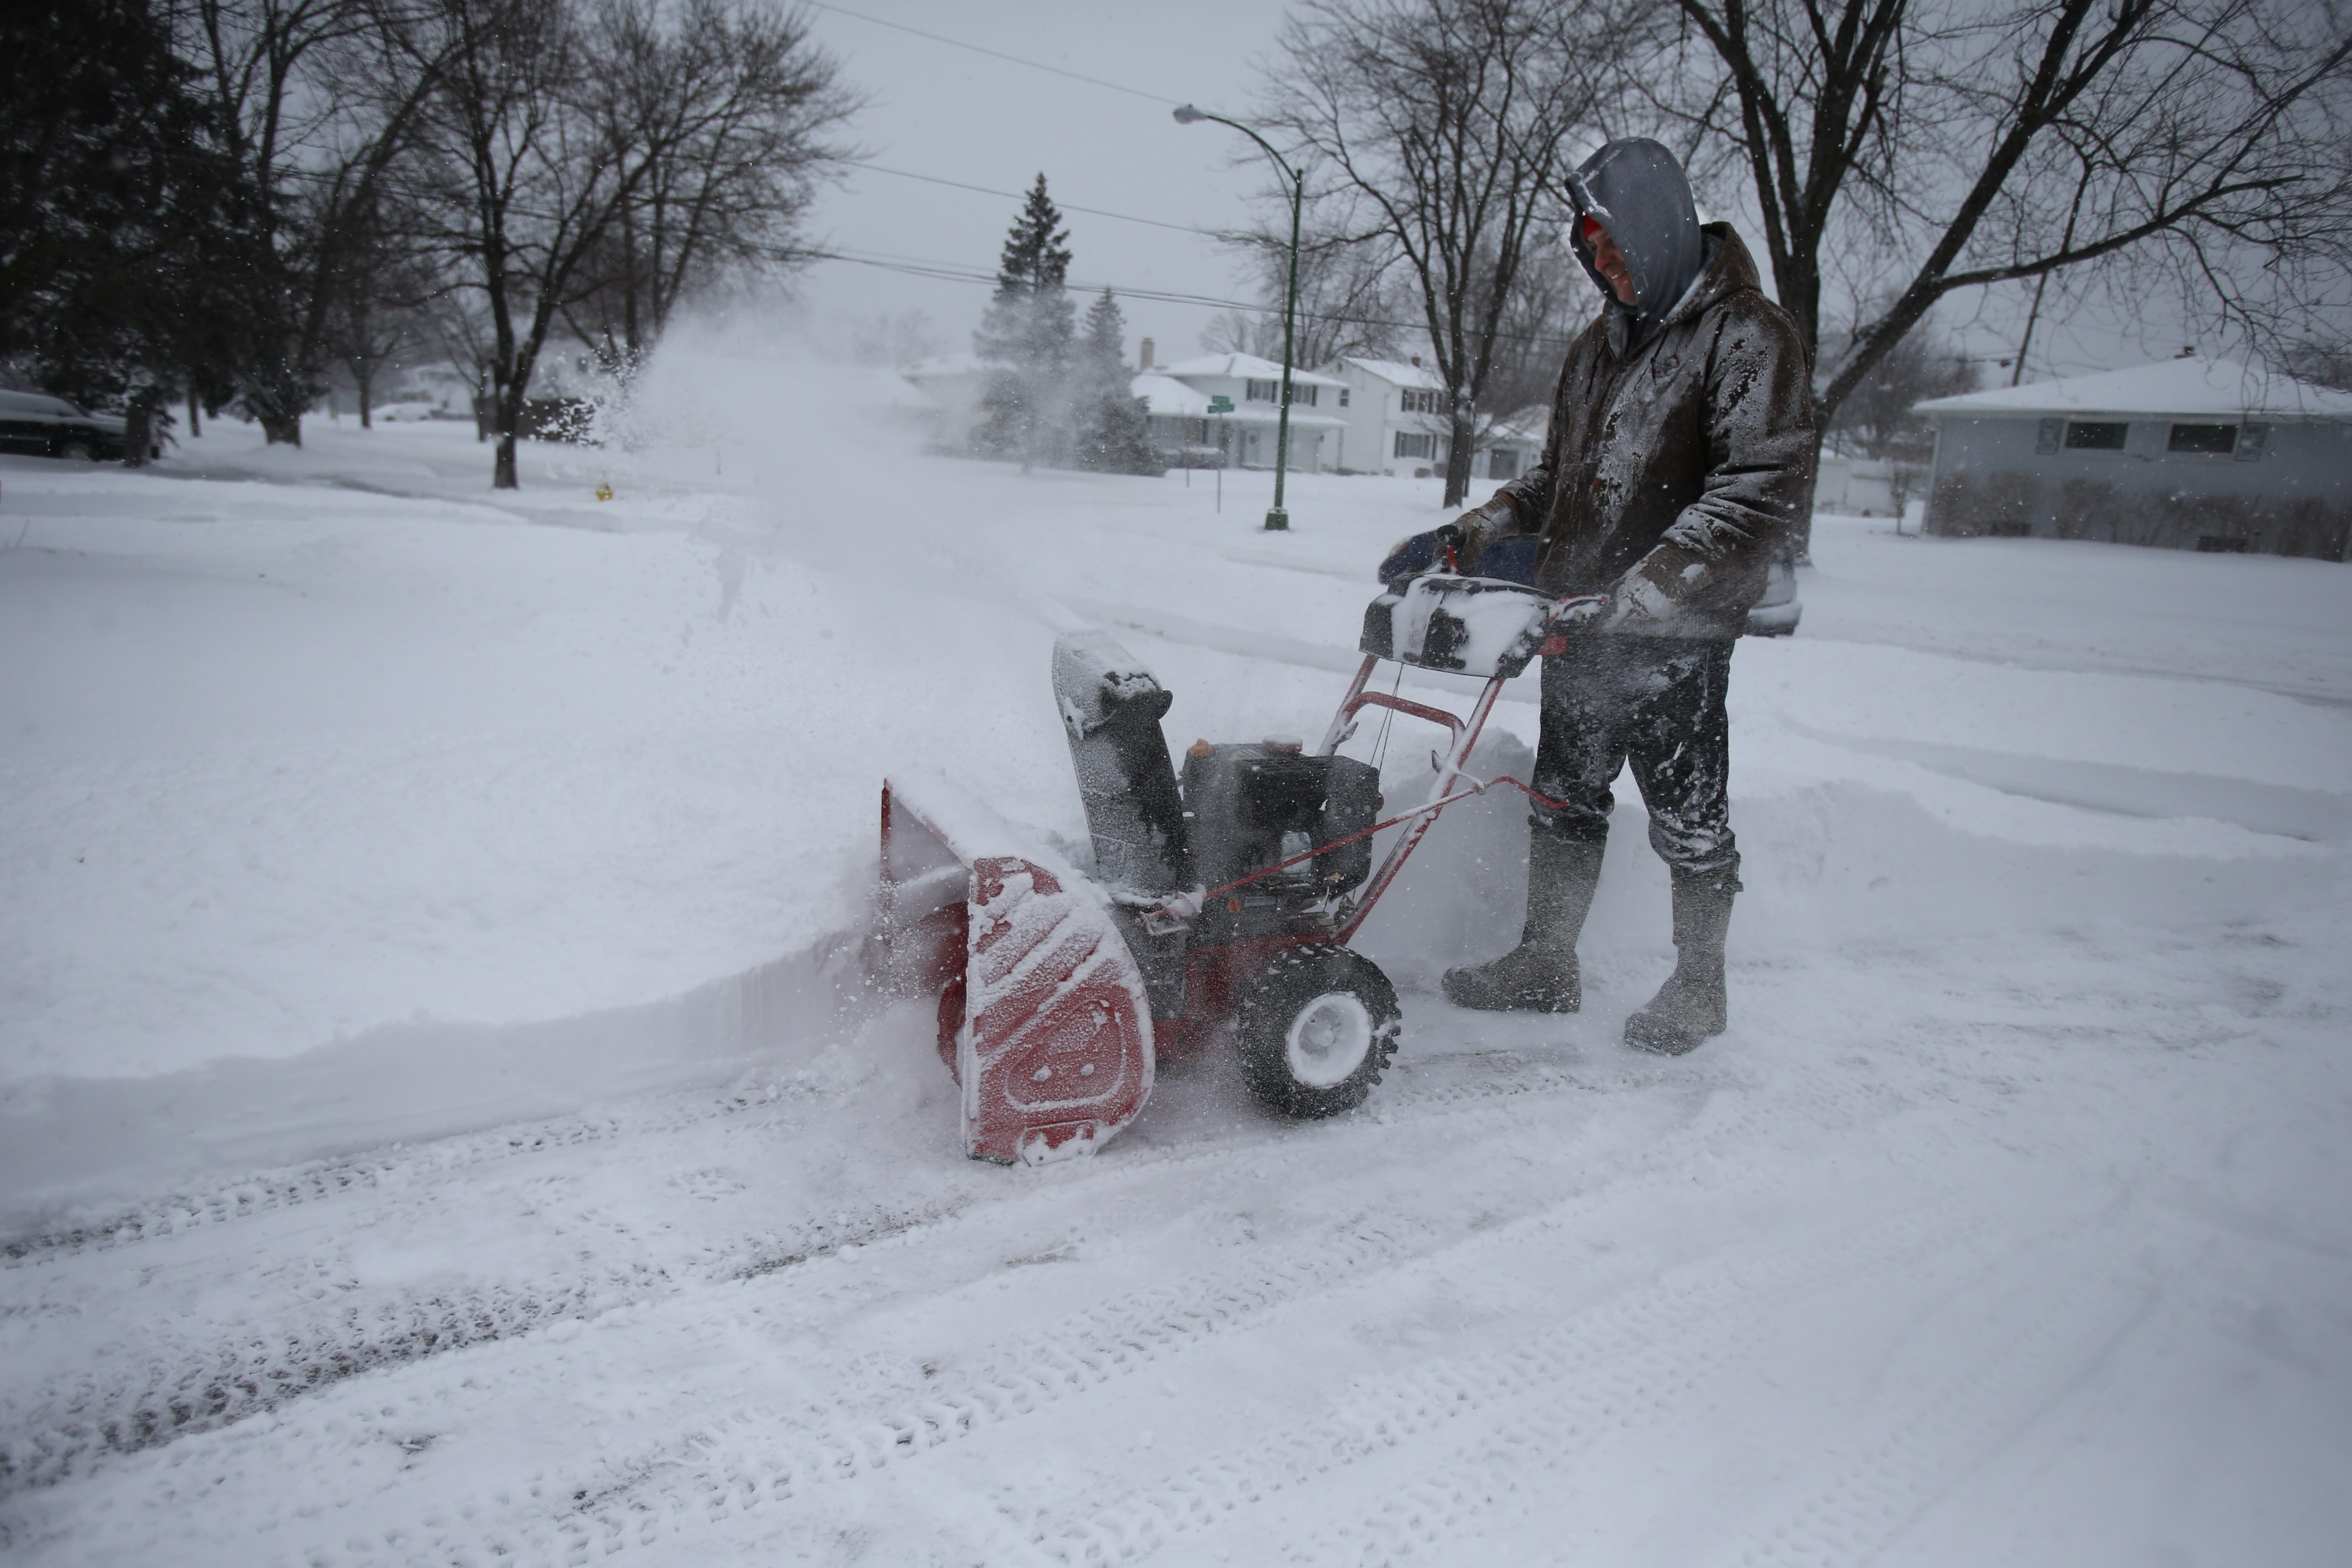 Bob Kendig uses a snowblower to clear his driveway in Amherst, Wednesday, February 5, 2014. (Charles Lewis/Buffalo News)